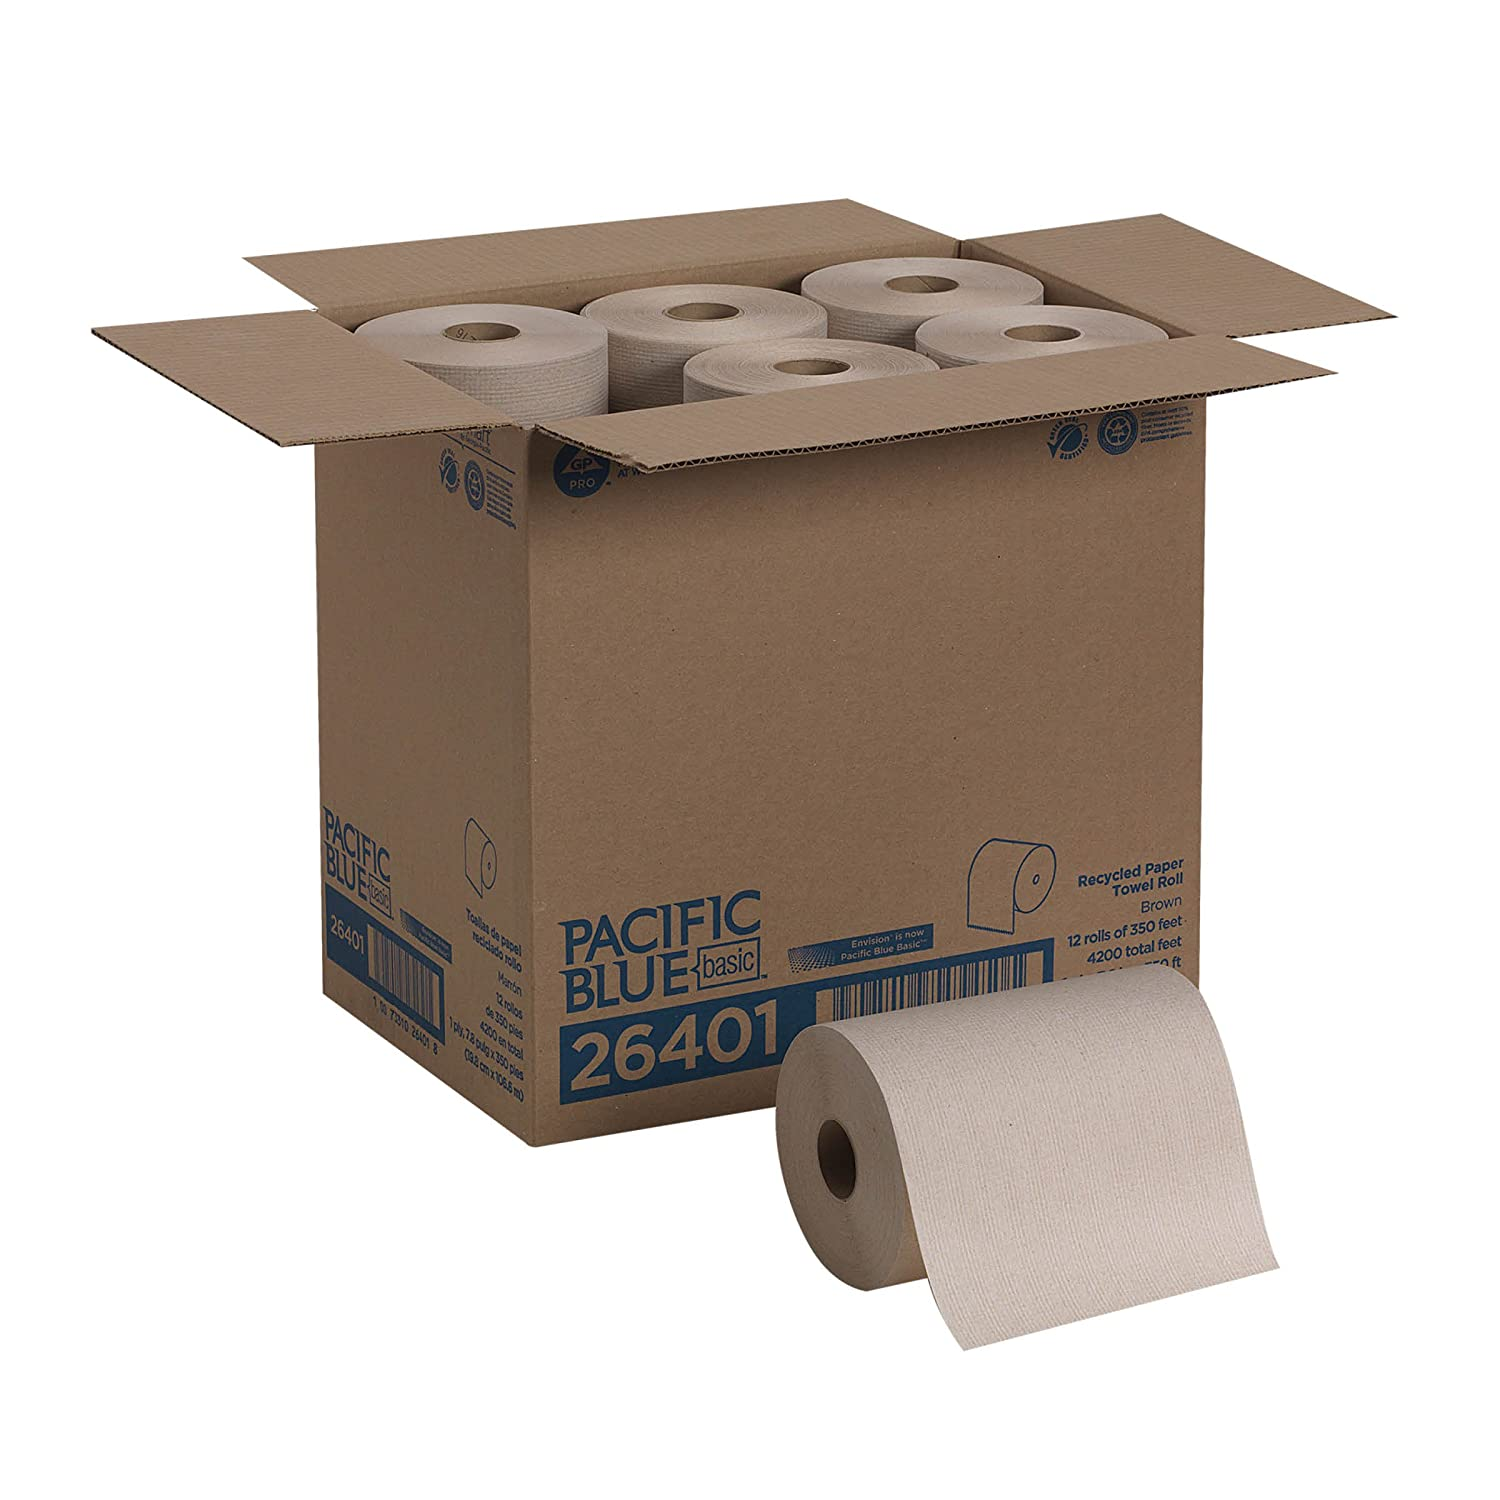 Renewed 26601 Pacific Blue Basic Recycled Paper Towel Rolls White 6 Rolls Per Case previously branded Envision 800 Feet Per Roll by GP PRO Georgia-Pacific